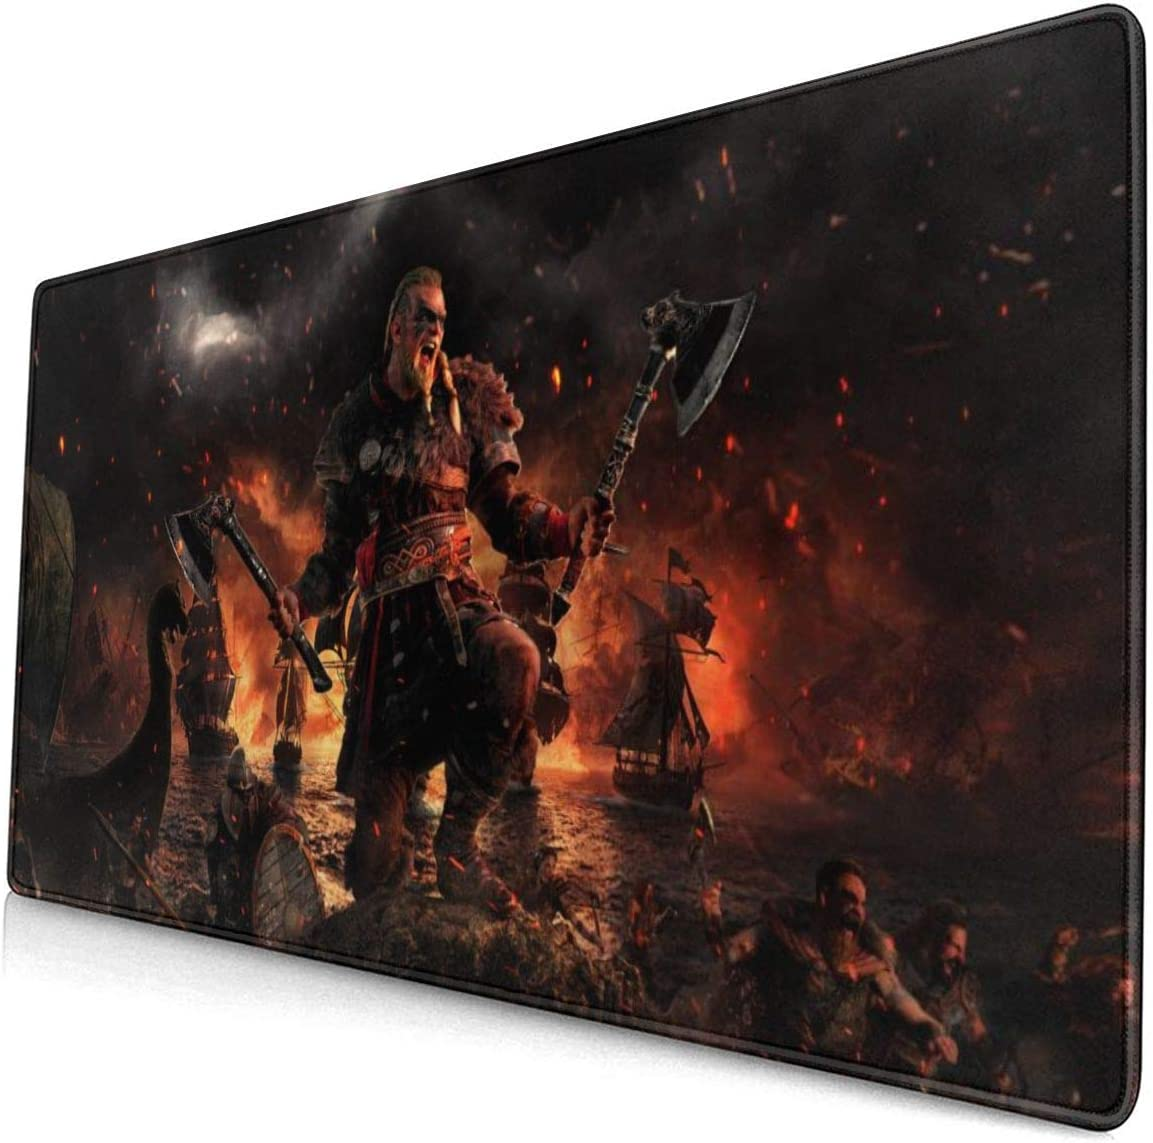 Assassin's Creed Valhalla Rectangle Non-Slip Rubber Mousepad Gaming Mouse Pad 15.7 X 29.5 in